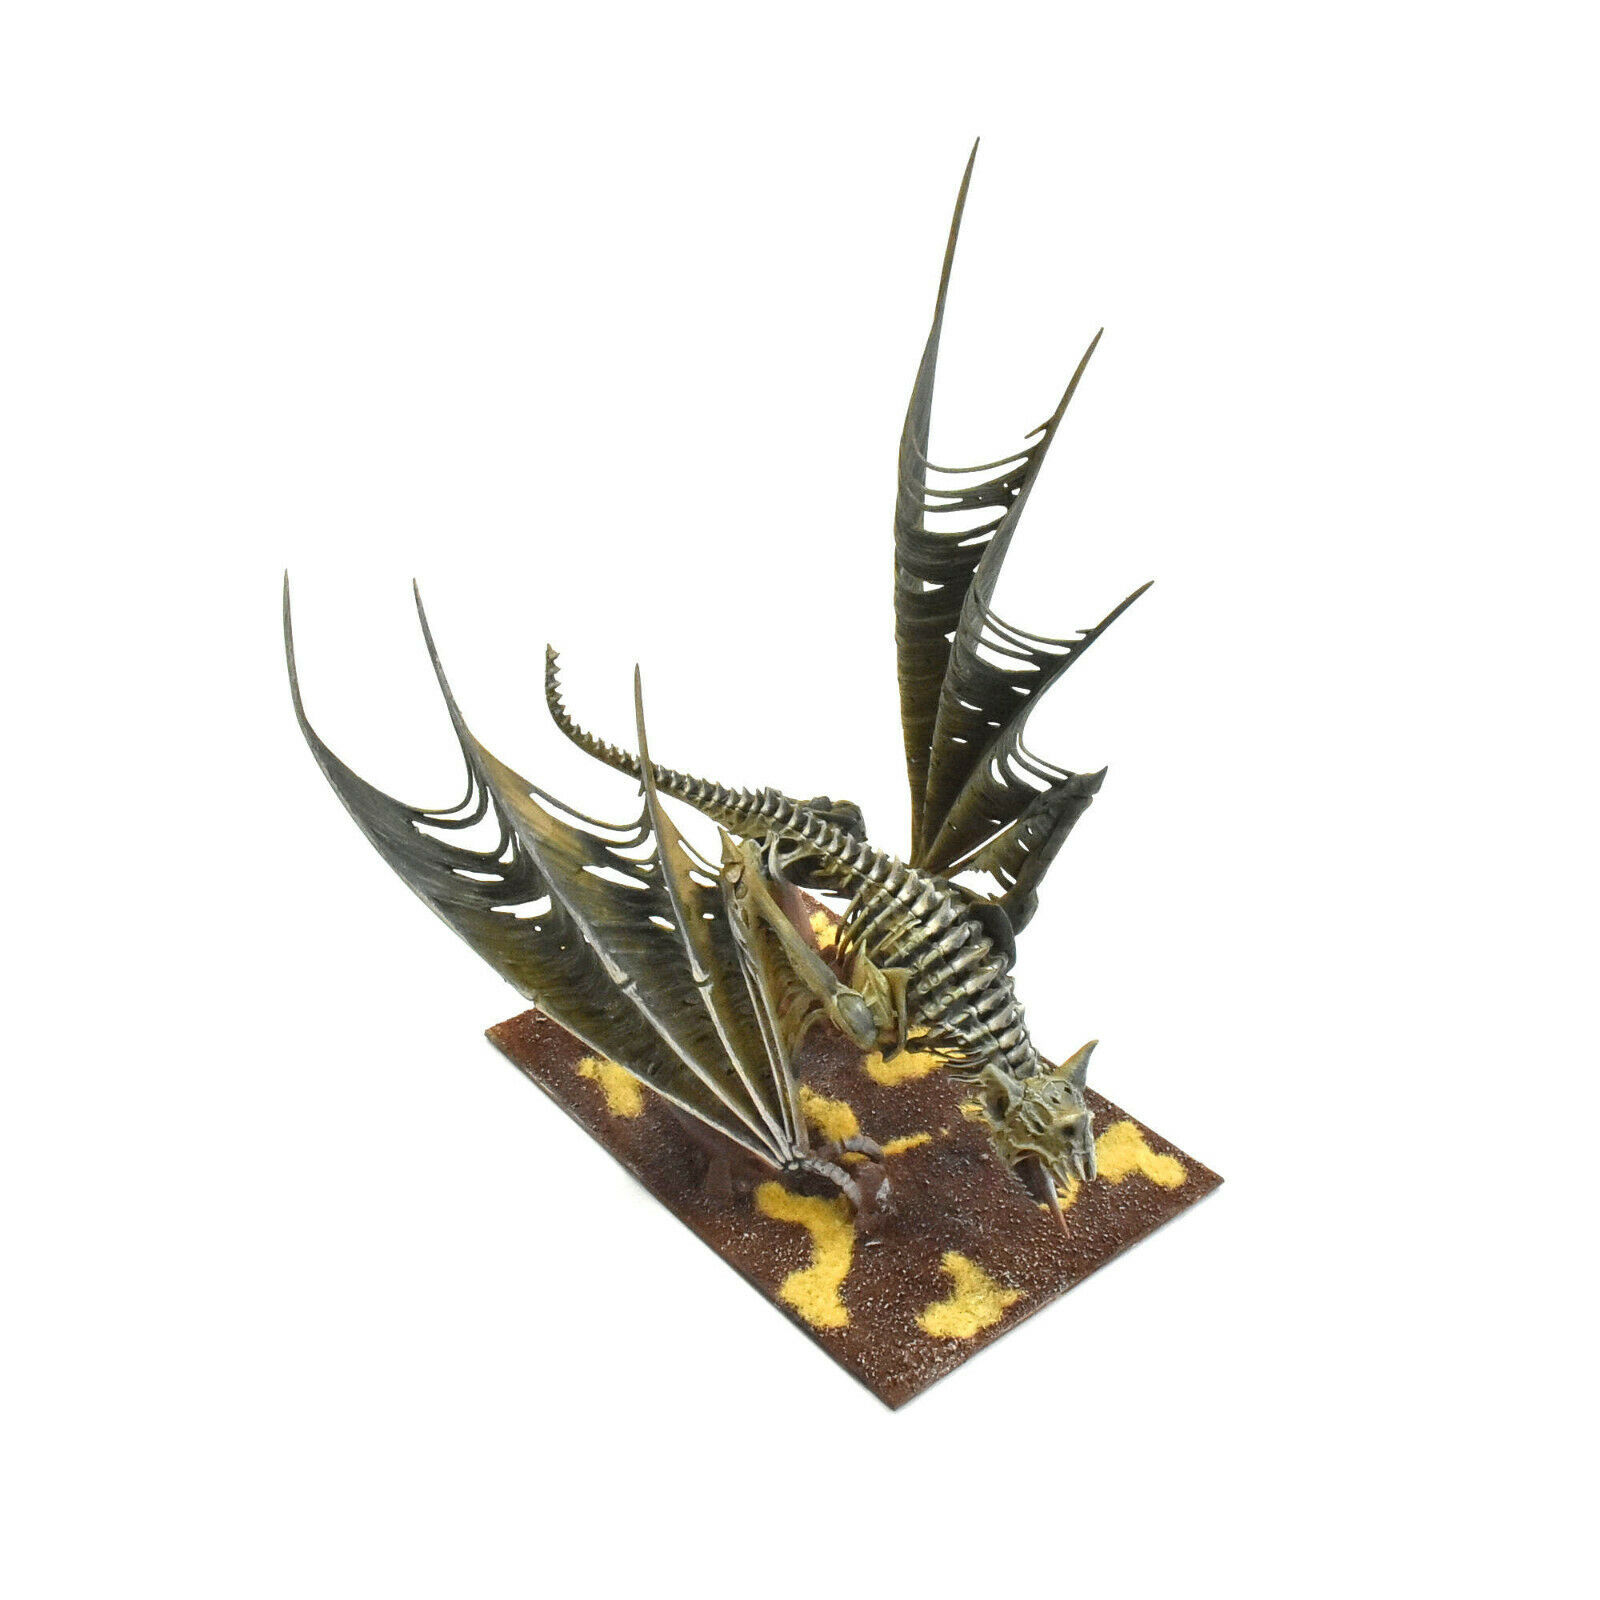 VAMPIRE COUNTS Terrorgheist WELL PAINTED Flesh eater courts Warhammer Fantasy